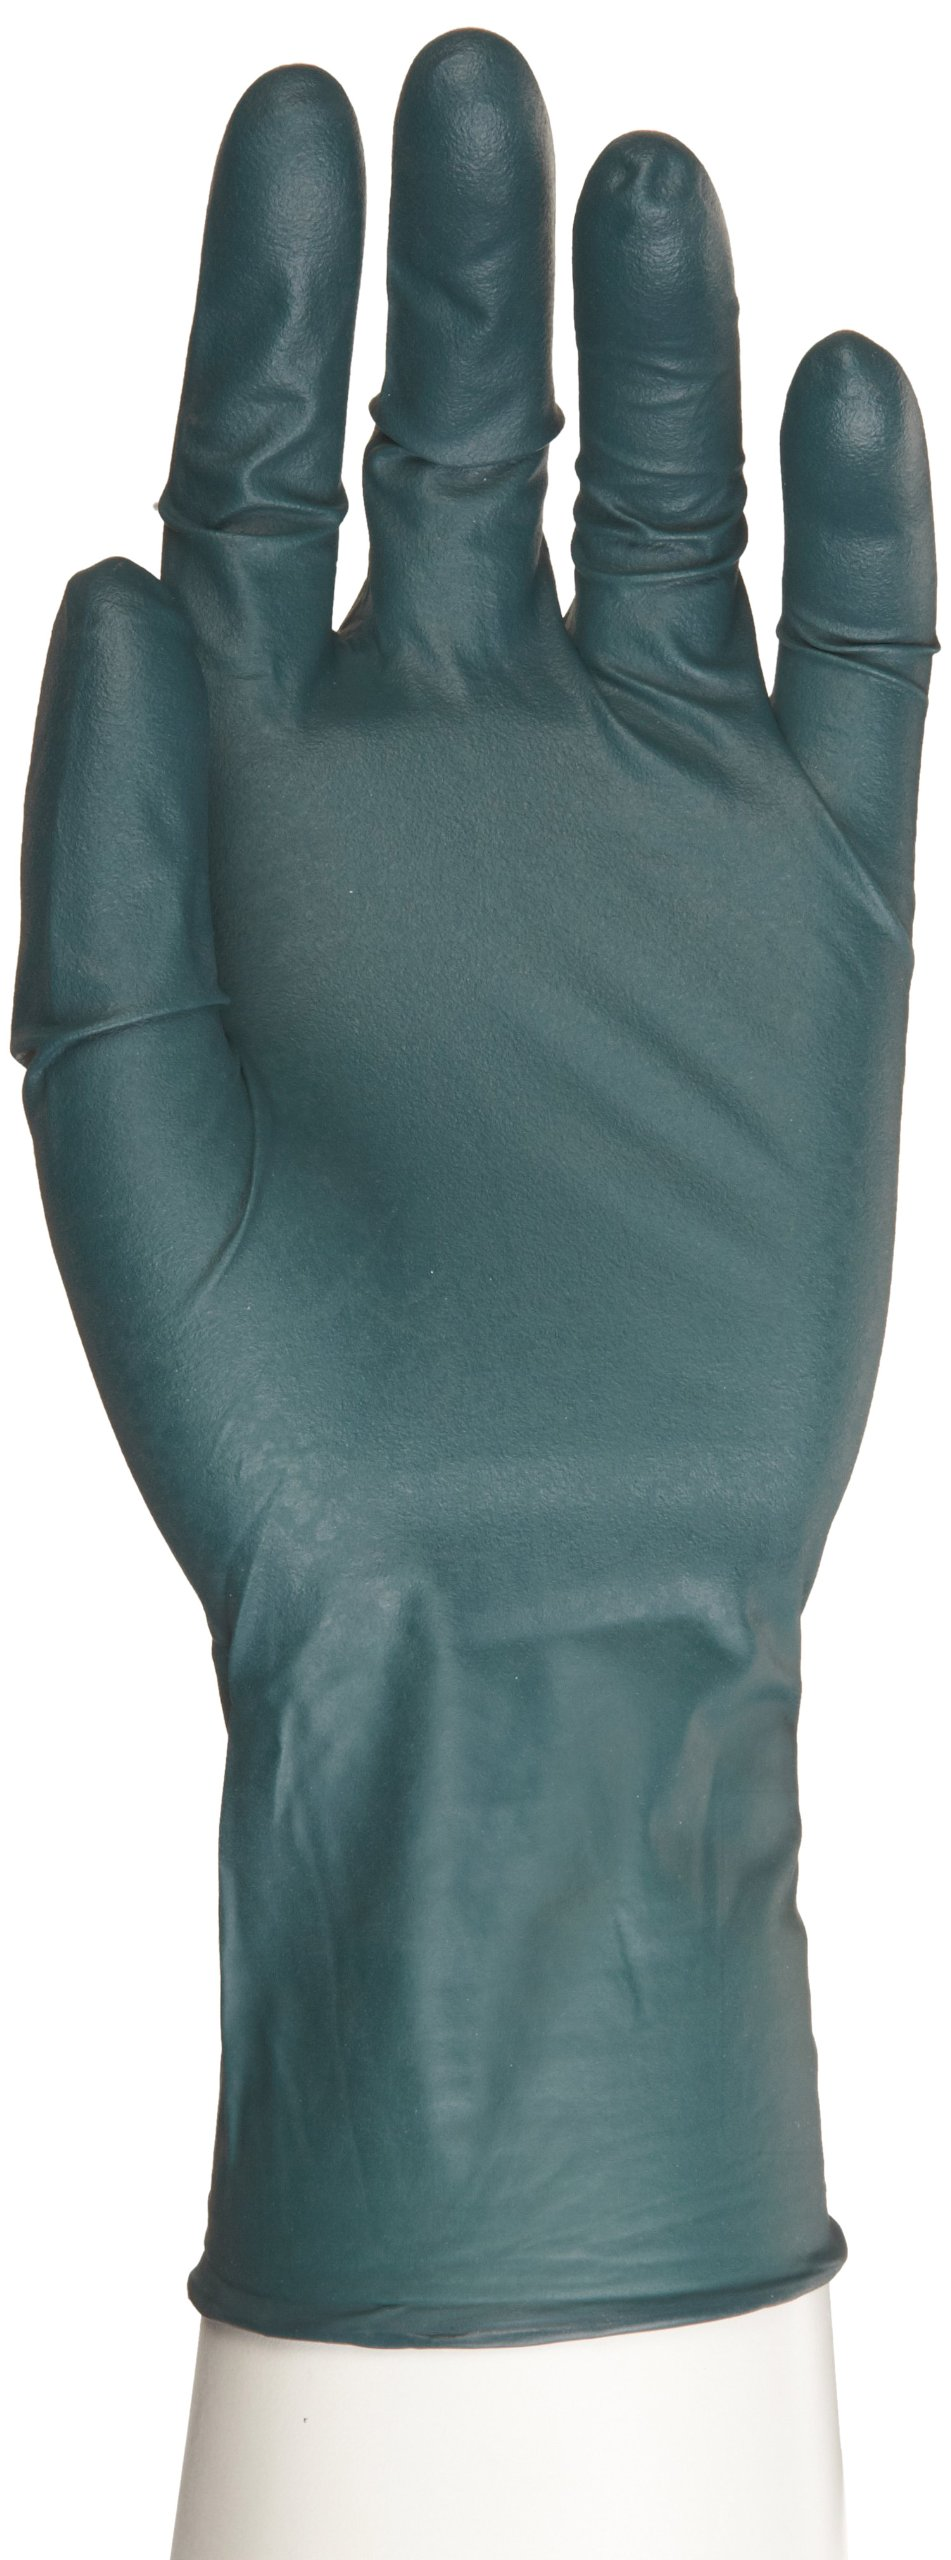 Microflex Dura Flock Nitrile Glove, Powder Free, 10.6'' Length, 8 mils Thick, X-Large (Pack of 500)